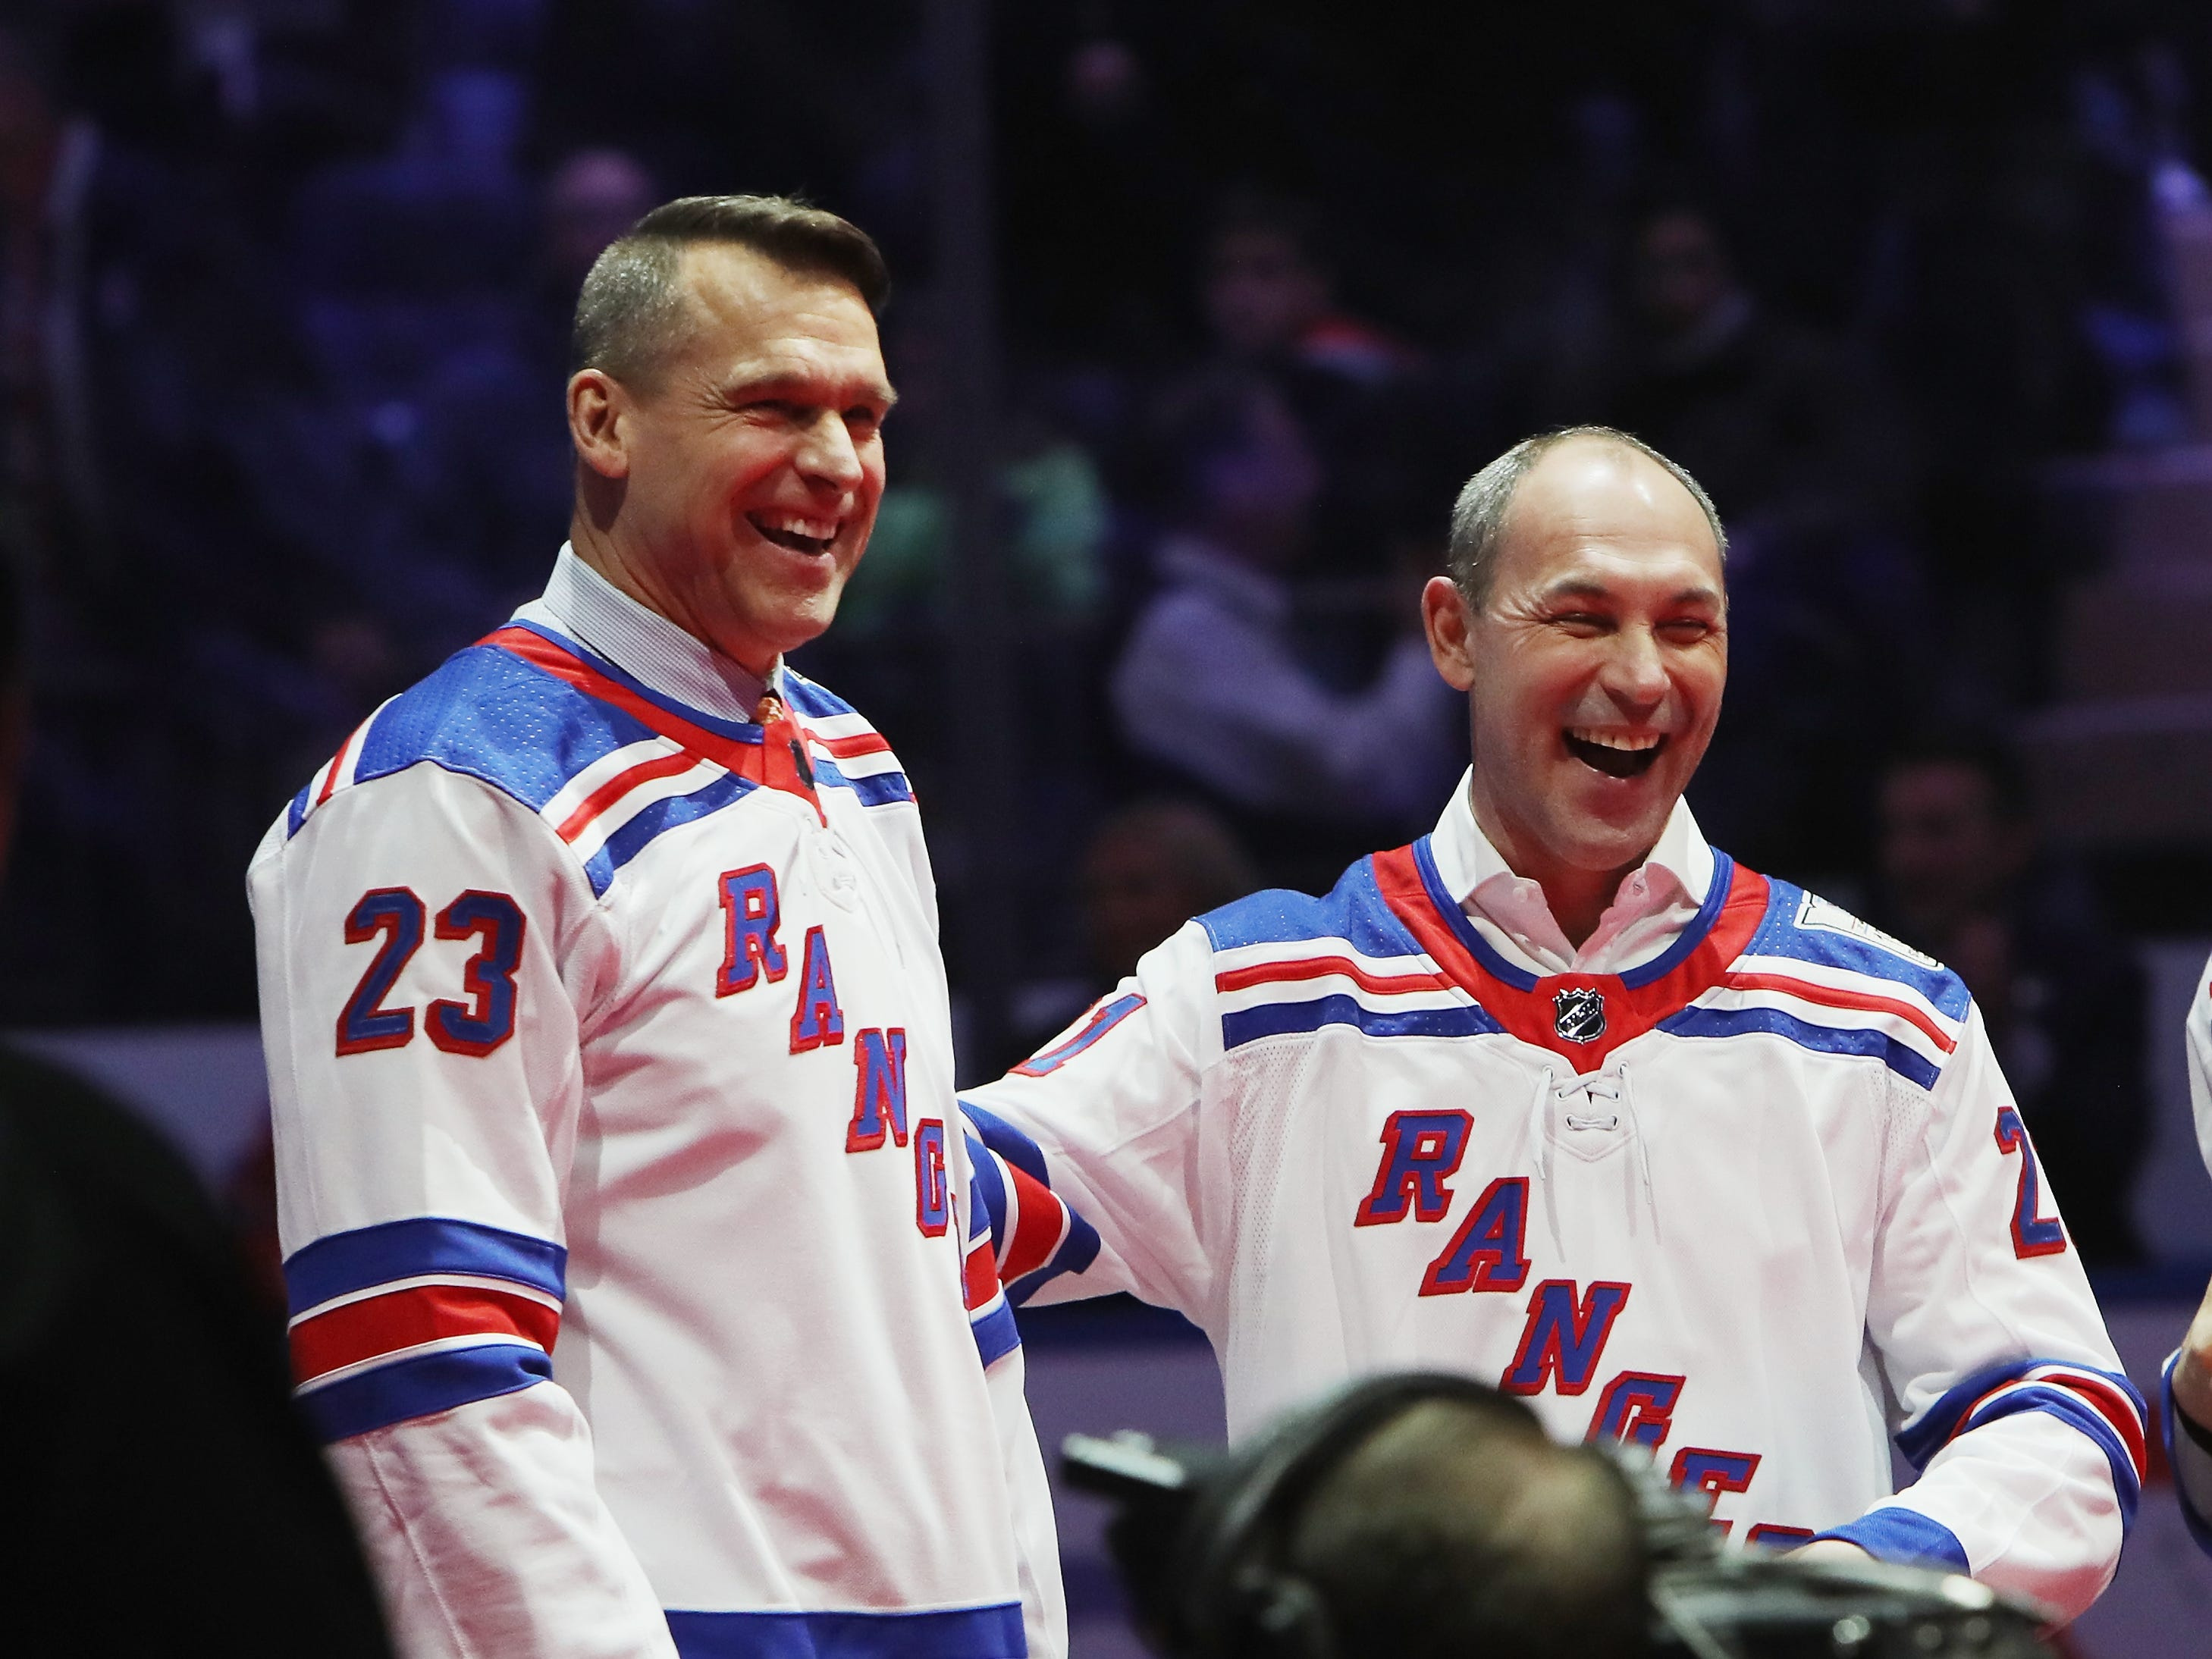 NEW YORK, NEW YORK - FEBRUARY 08: (l-r) Jeff Beukeboom and Sergei Zubov of the New York Rangers Stanley Cup winning team of 1994 attend a ceremony prior to the Rangers game against the Carolina Hurricanes at Madison Square Garden on February 08, 2019 in New York City. The Rangers were celebrating the 25th anniversary of their Stanley Cup win in 1994